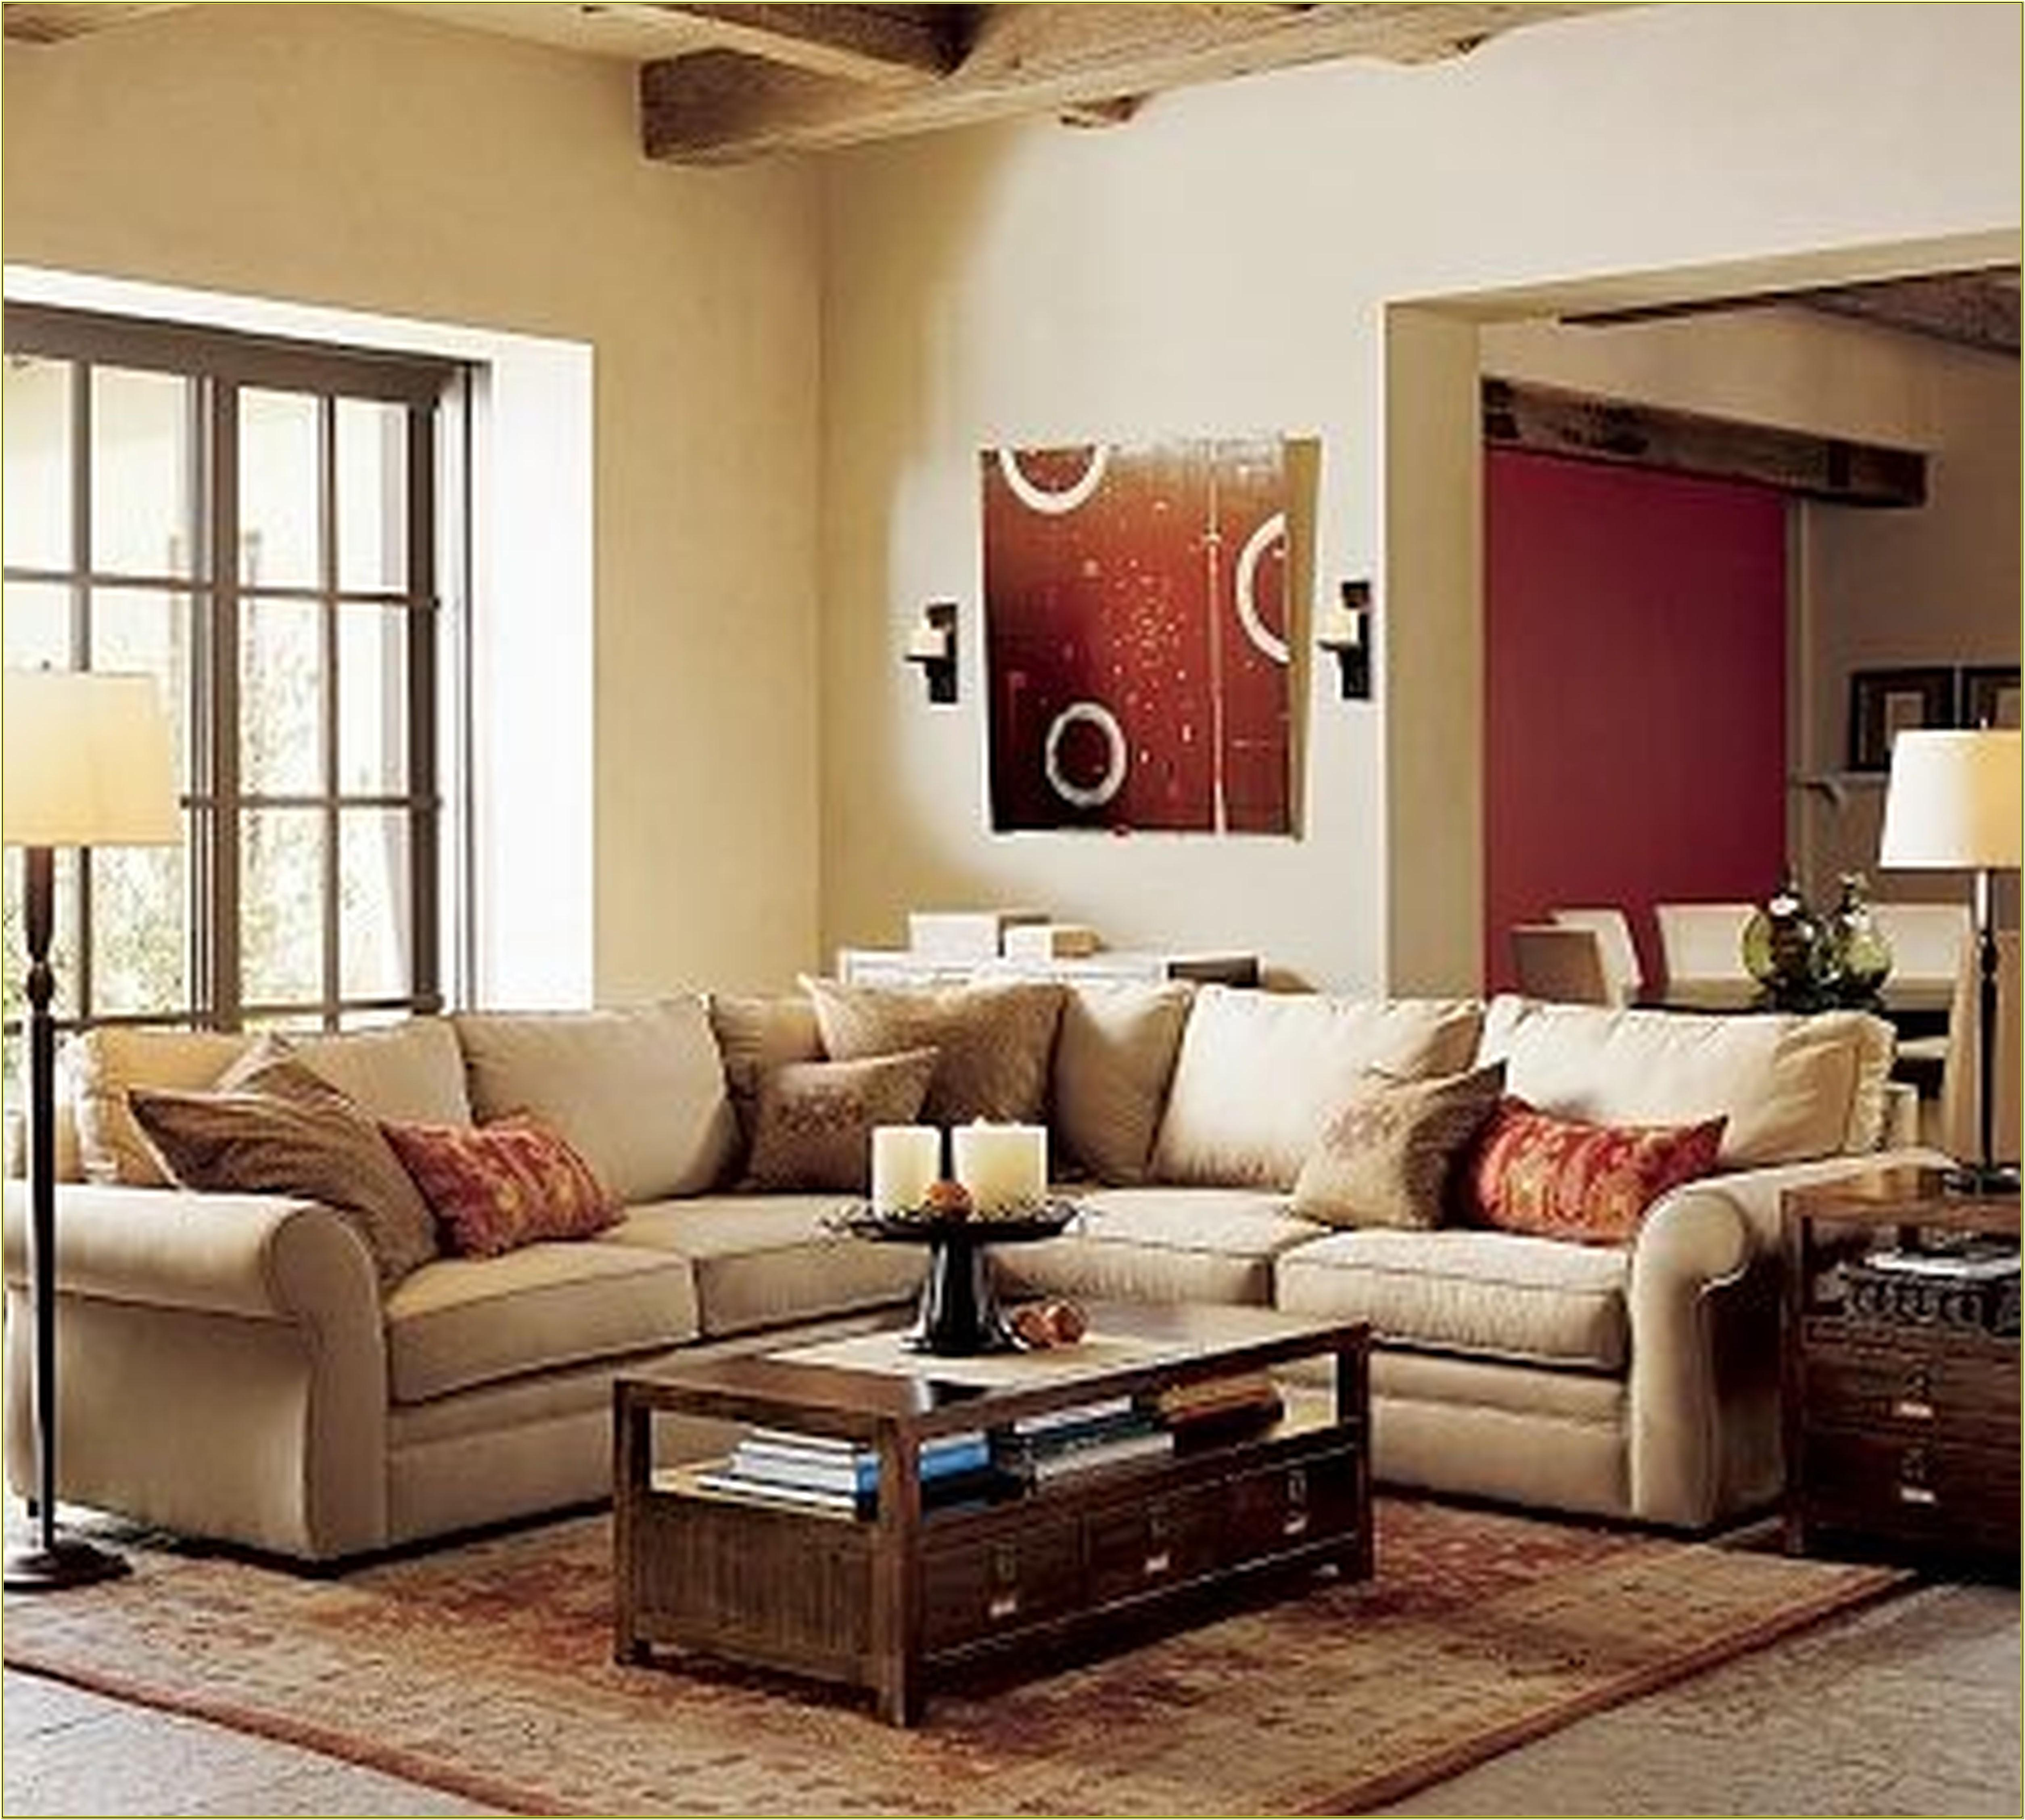 Living Room Ideas With Large Pictures